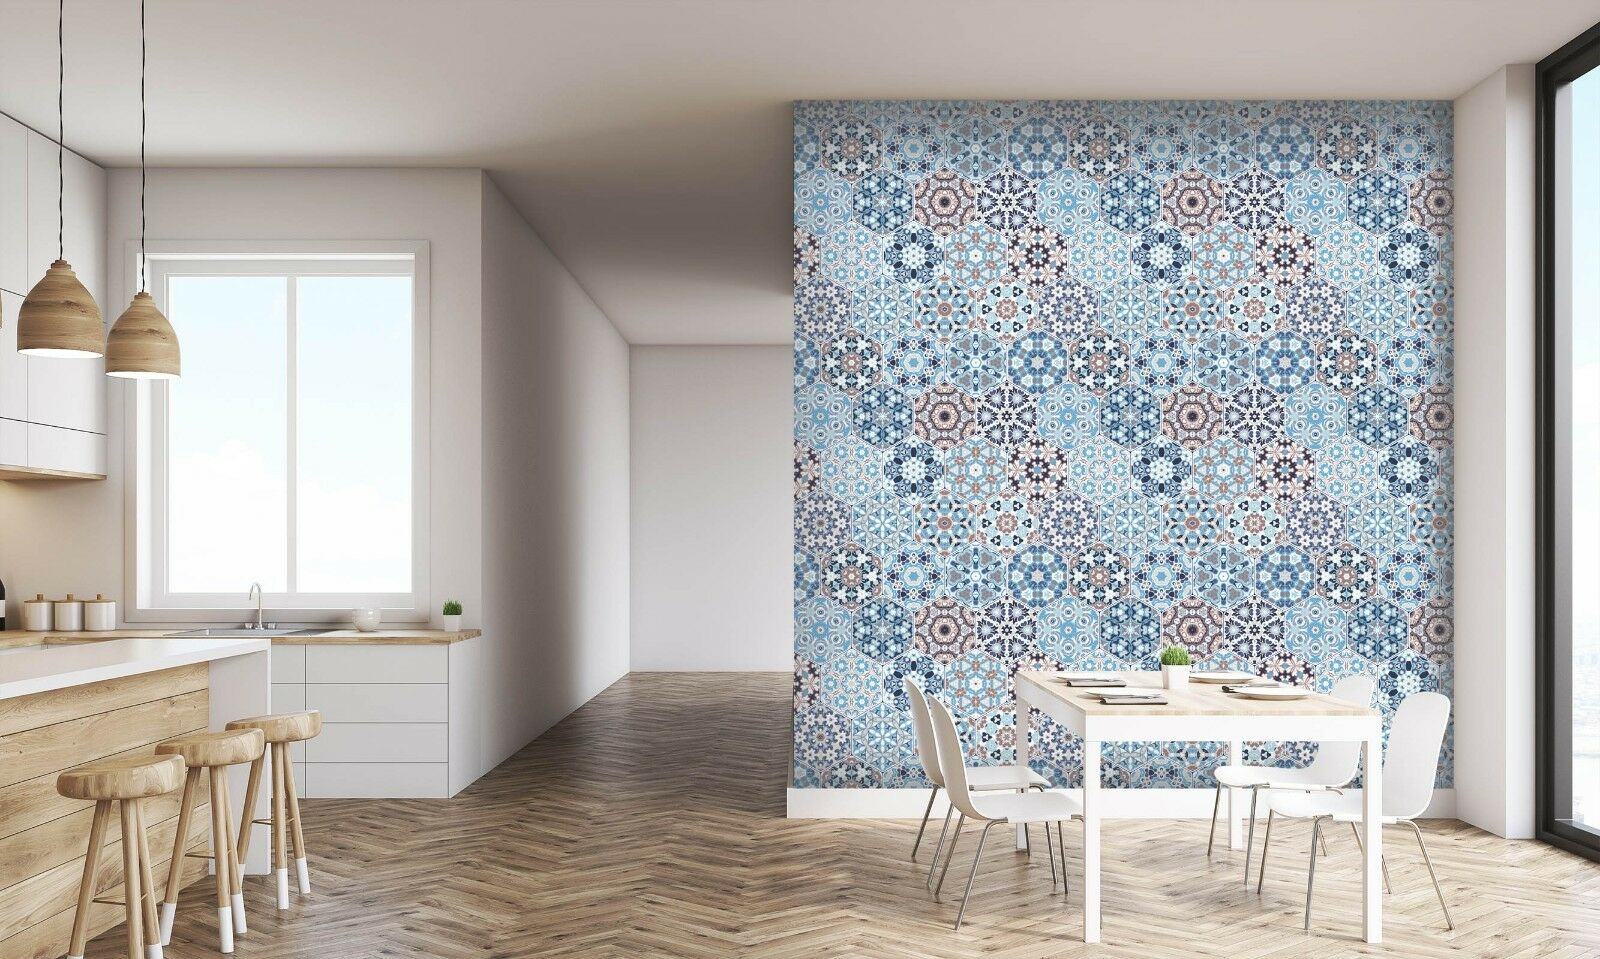 3D Different Patterns 861 Texture Tiles Marble Wall Paper Decal Wallpaper Mural